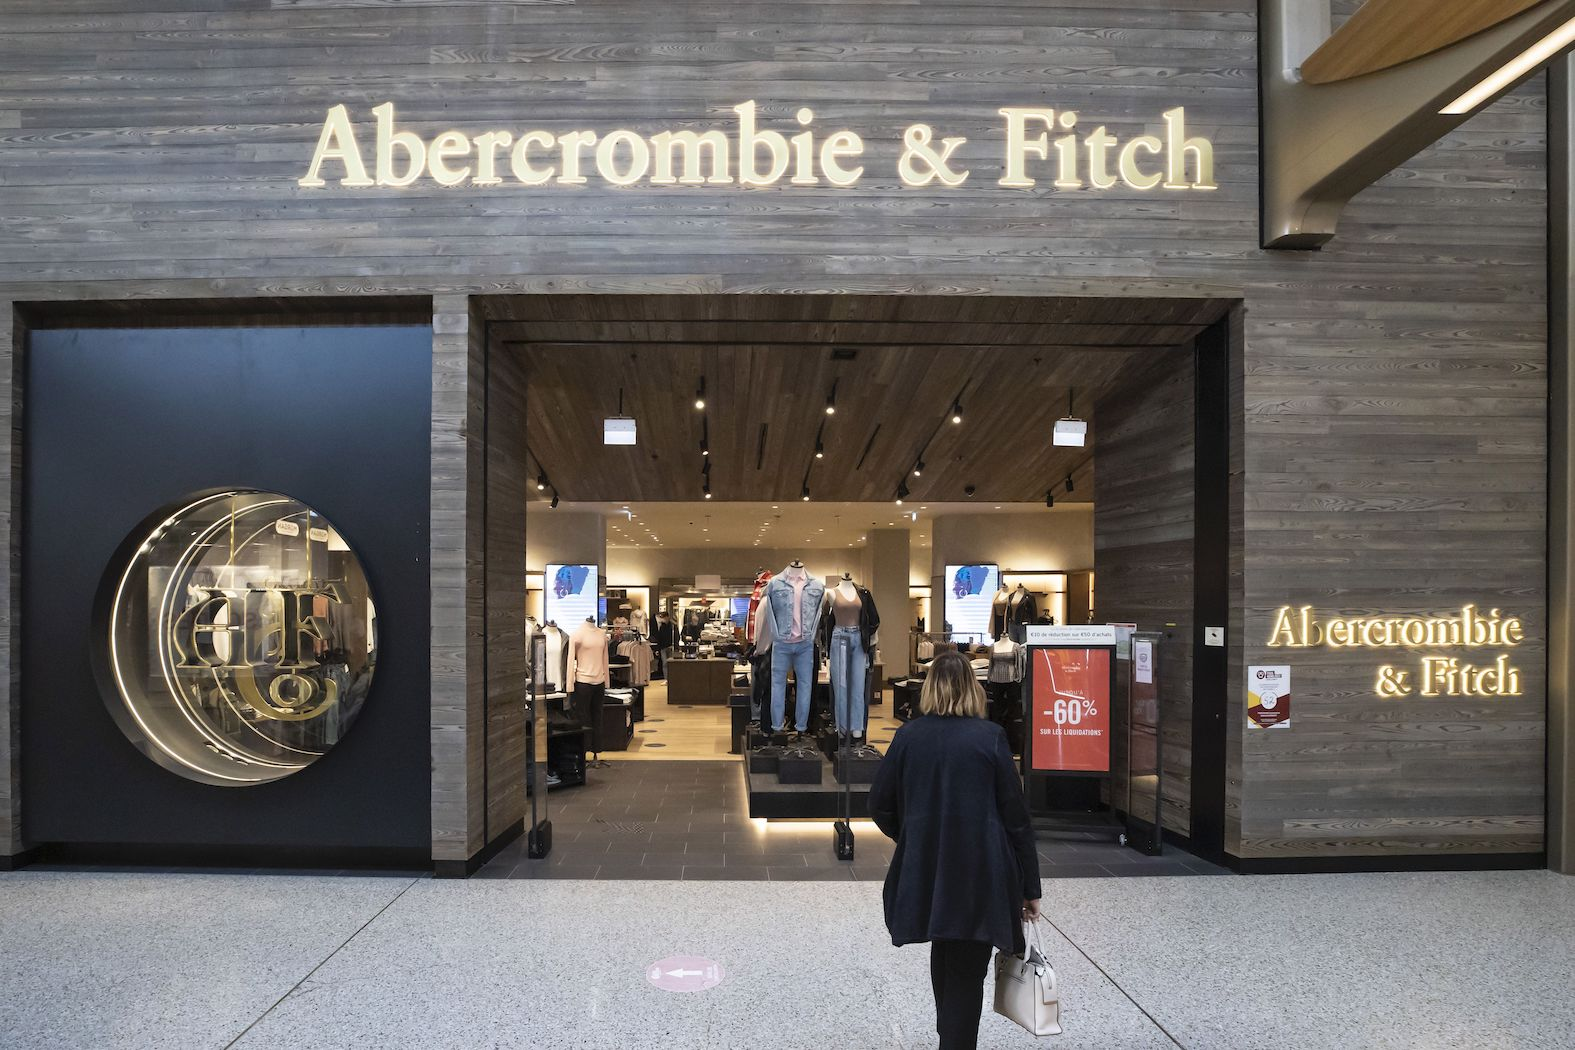 Abercrombie & Fitch has been able to absorb inflationary labor costs and supply chain pressures largely in part to its reduction in stores.